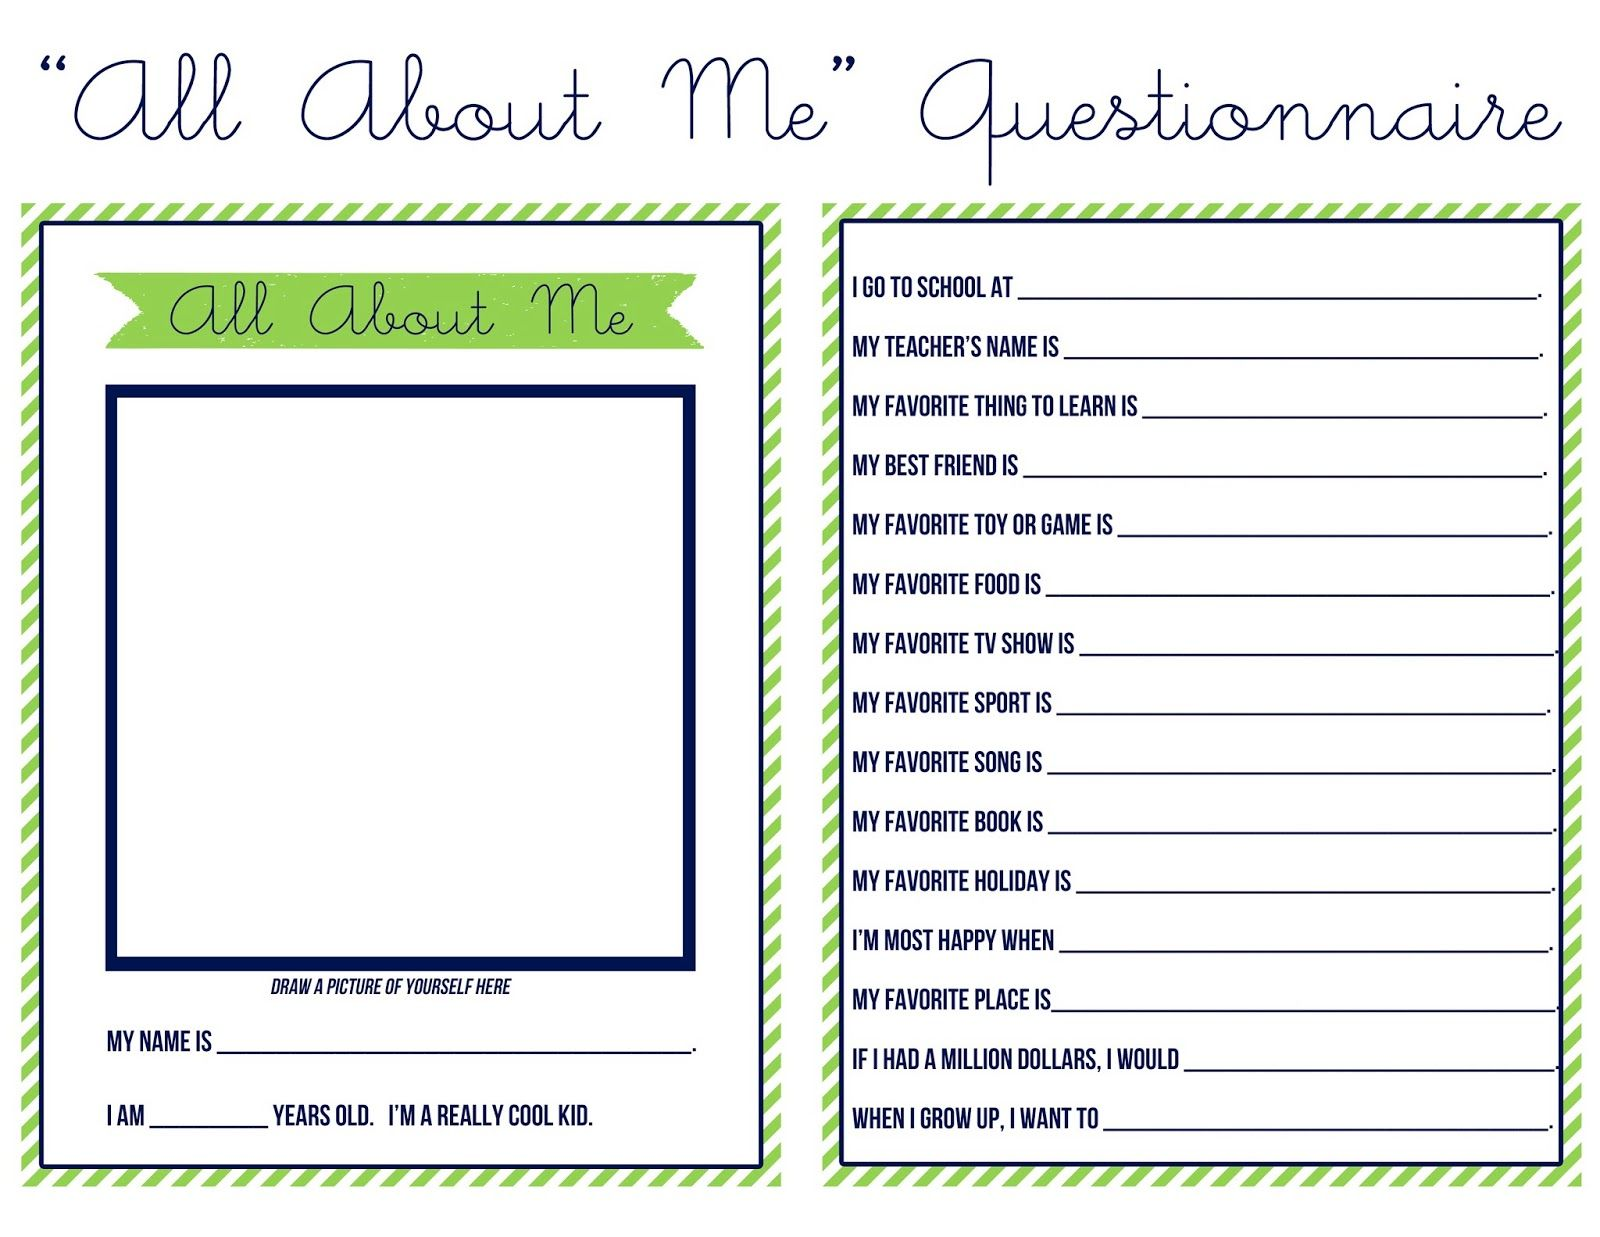 Sweet Nothings All About Me Questionnaire